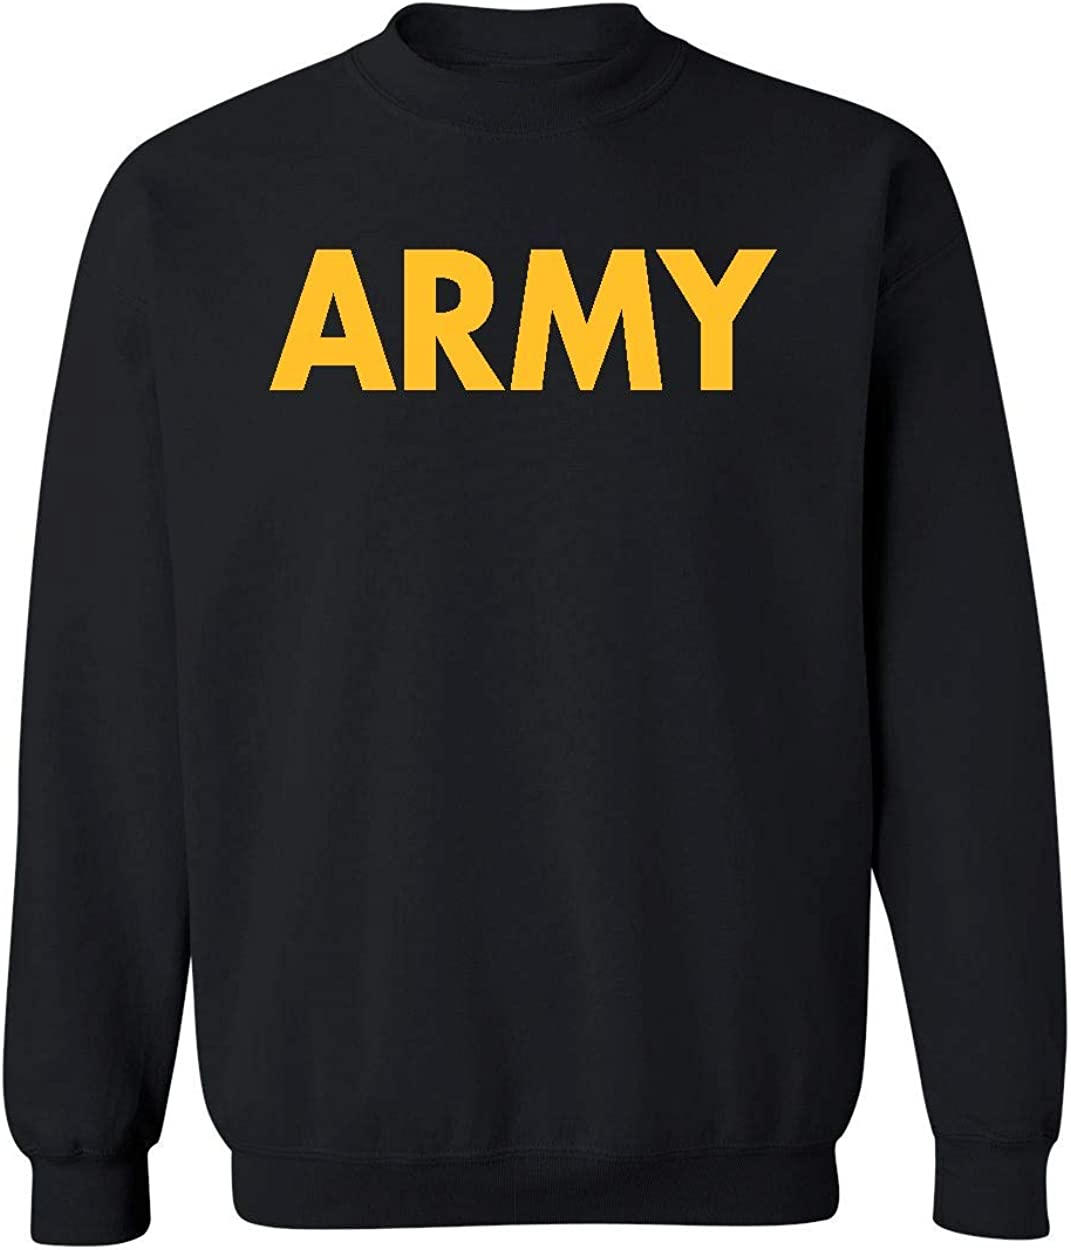 US Military Gear Army Training PT Crewneck Sweatshirt